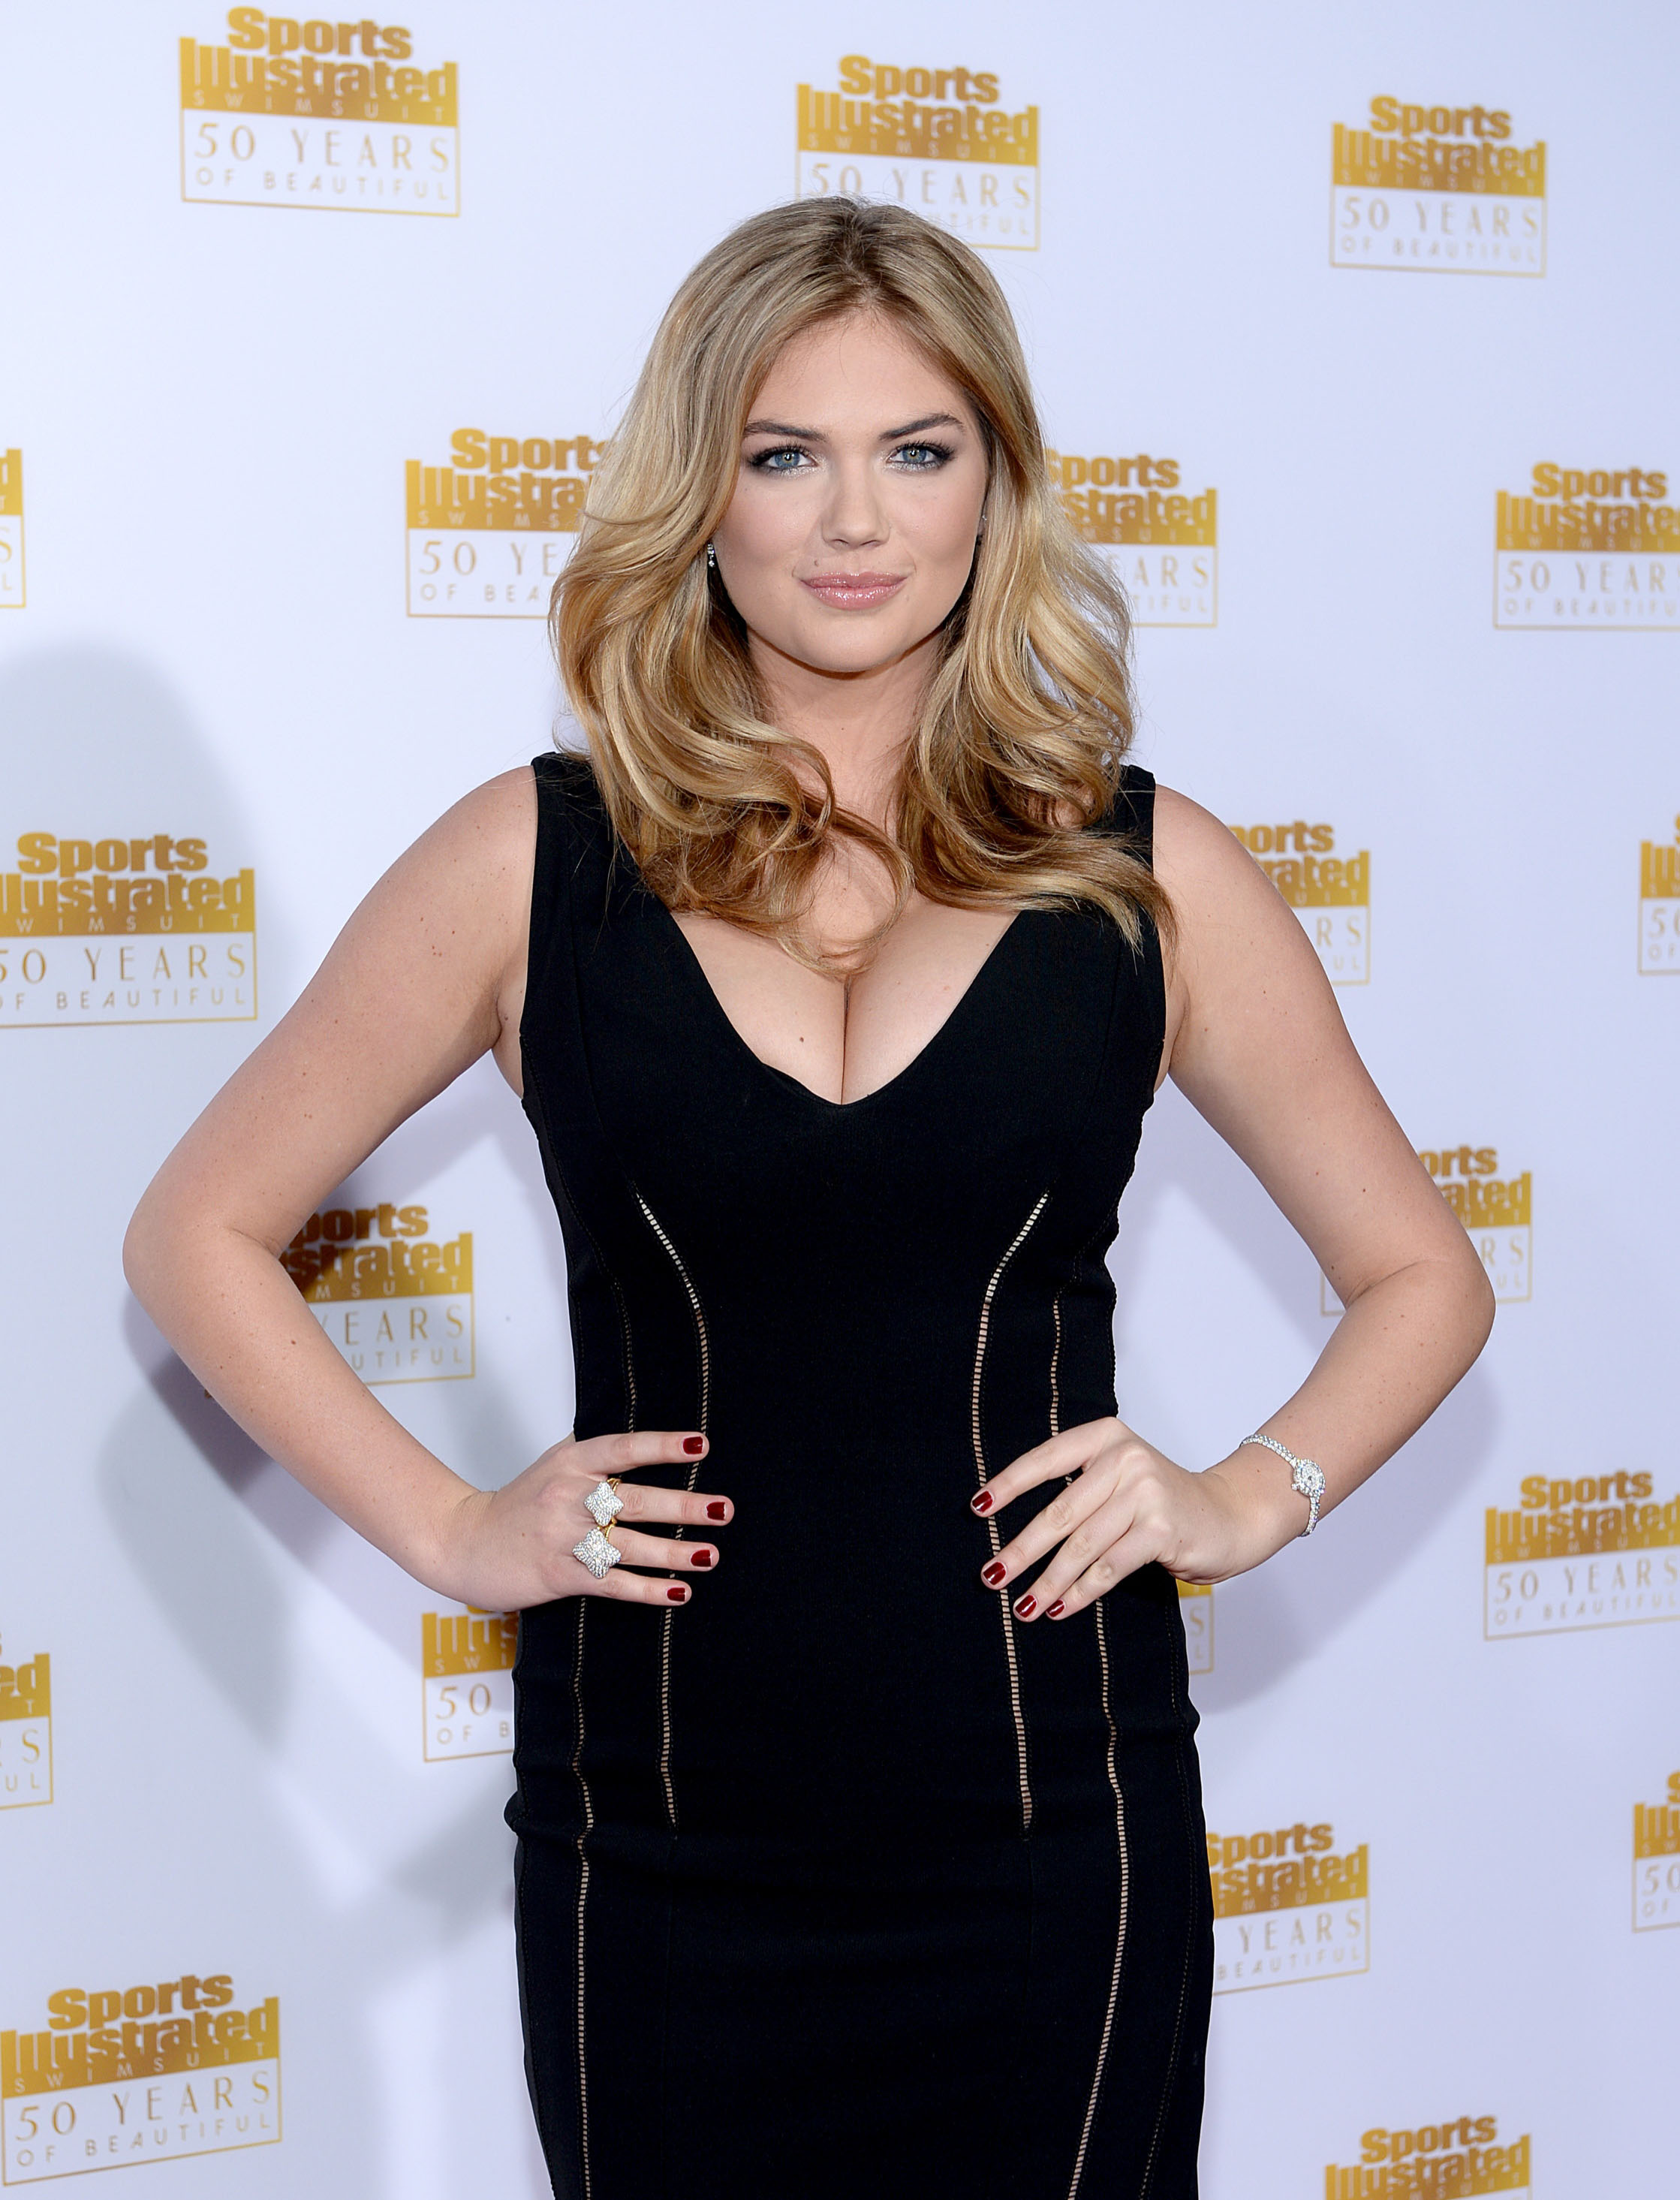 Gallery: 50th Anniversary of Sports Illustrated Swimsuit Issue